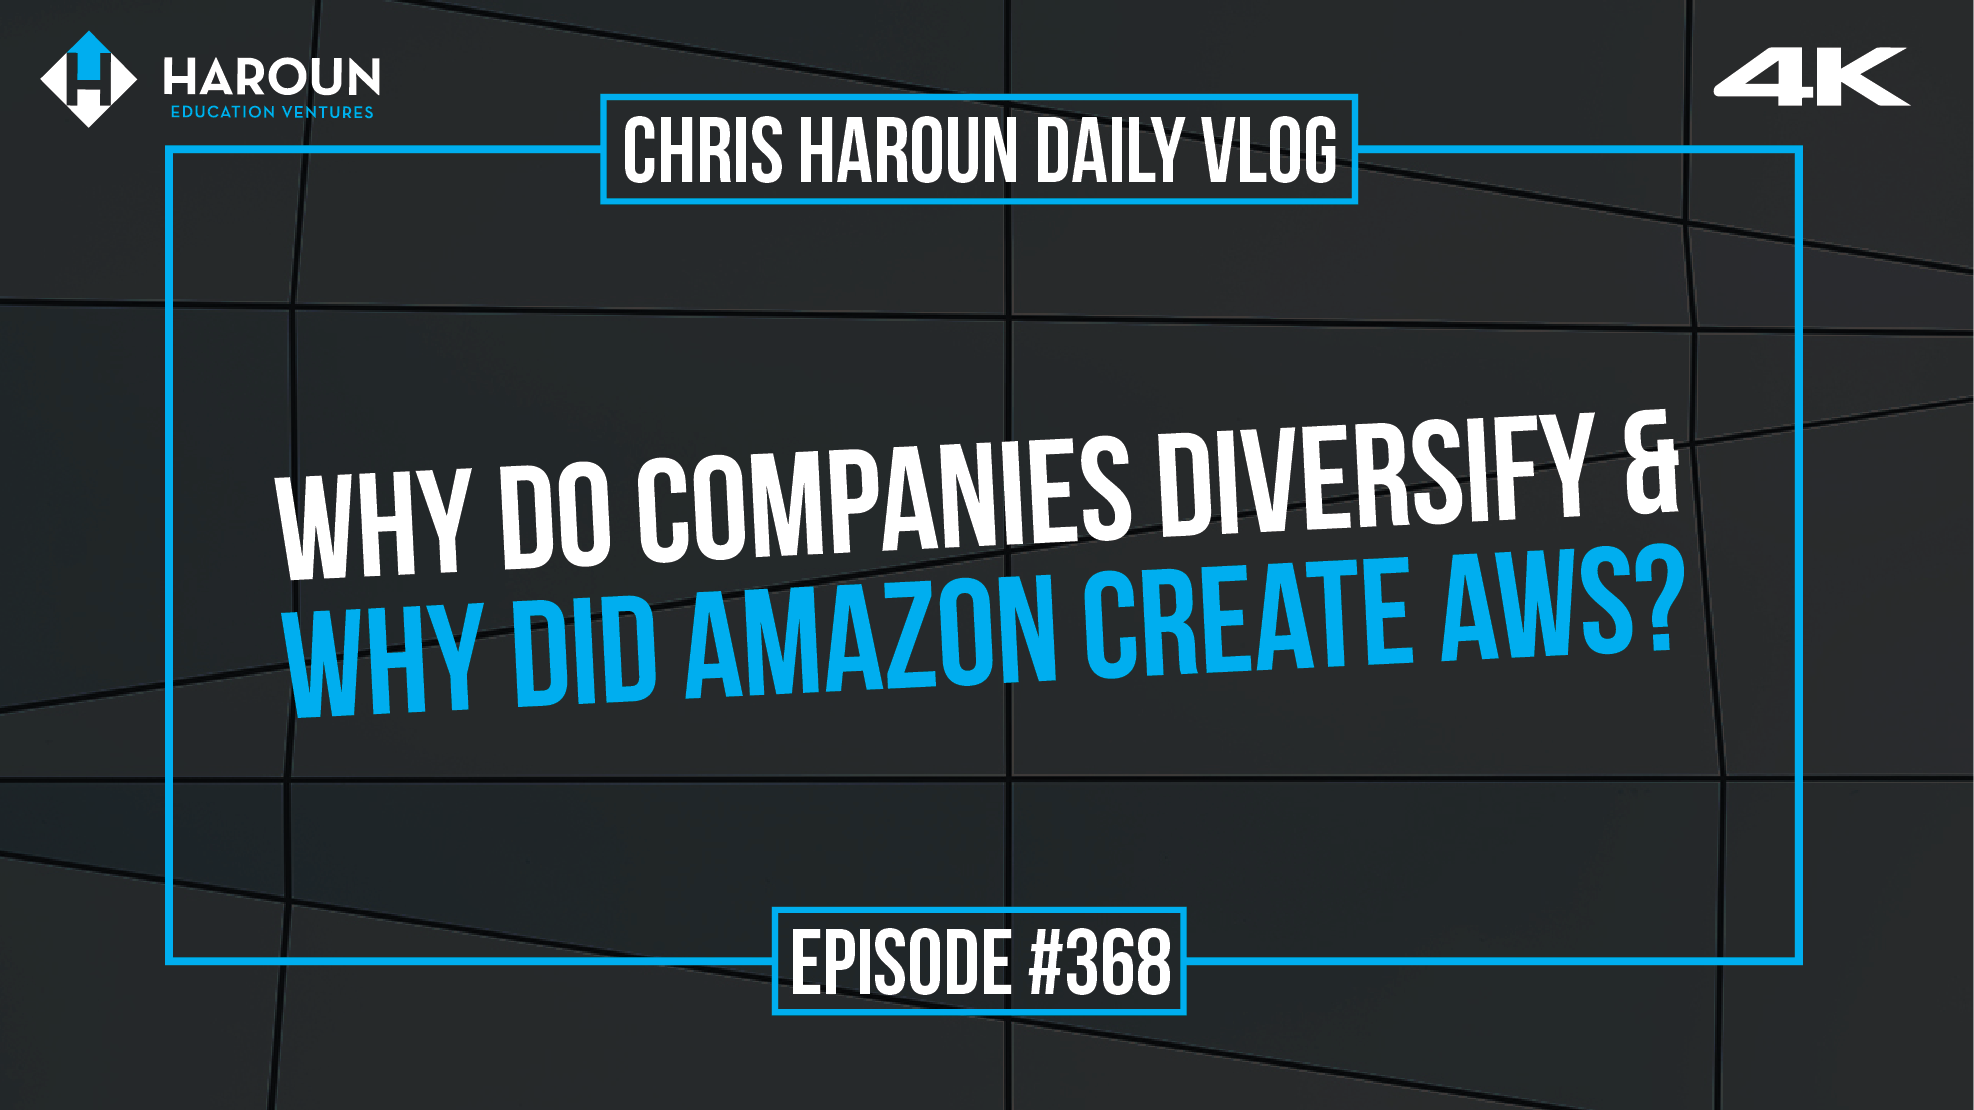 VLOG_368_8_3_2019_Why Do Companies Diversify & Why Did Amazon Create AWS?.png